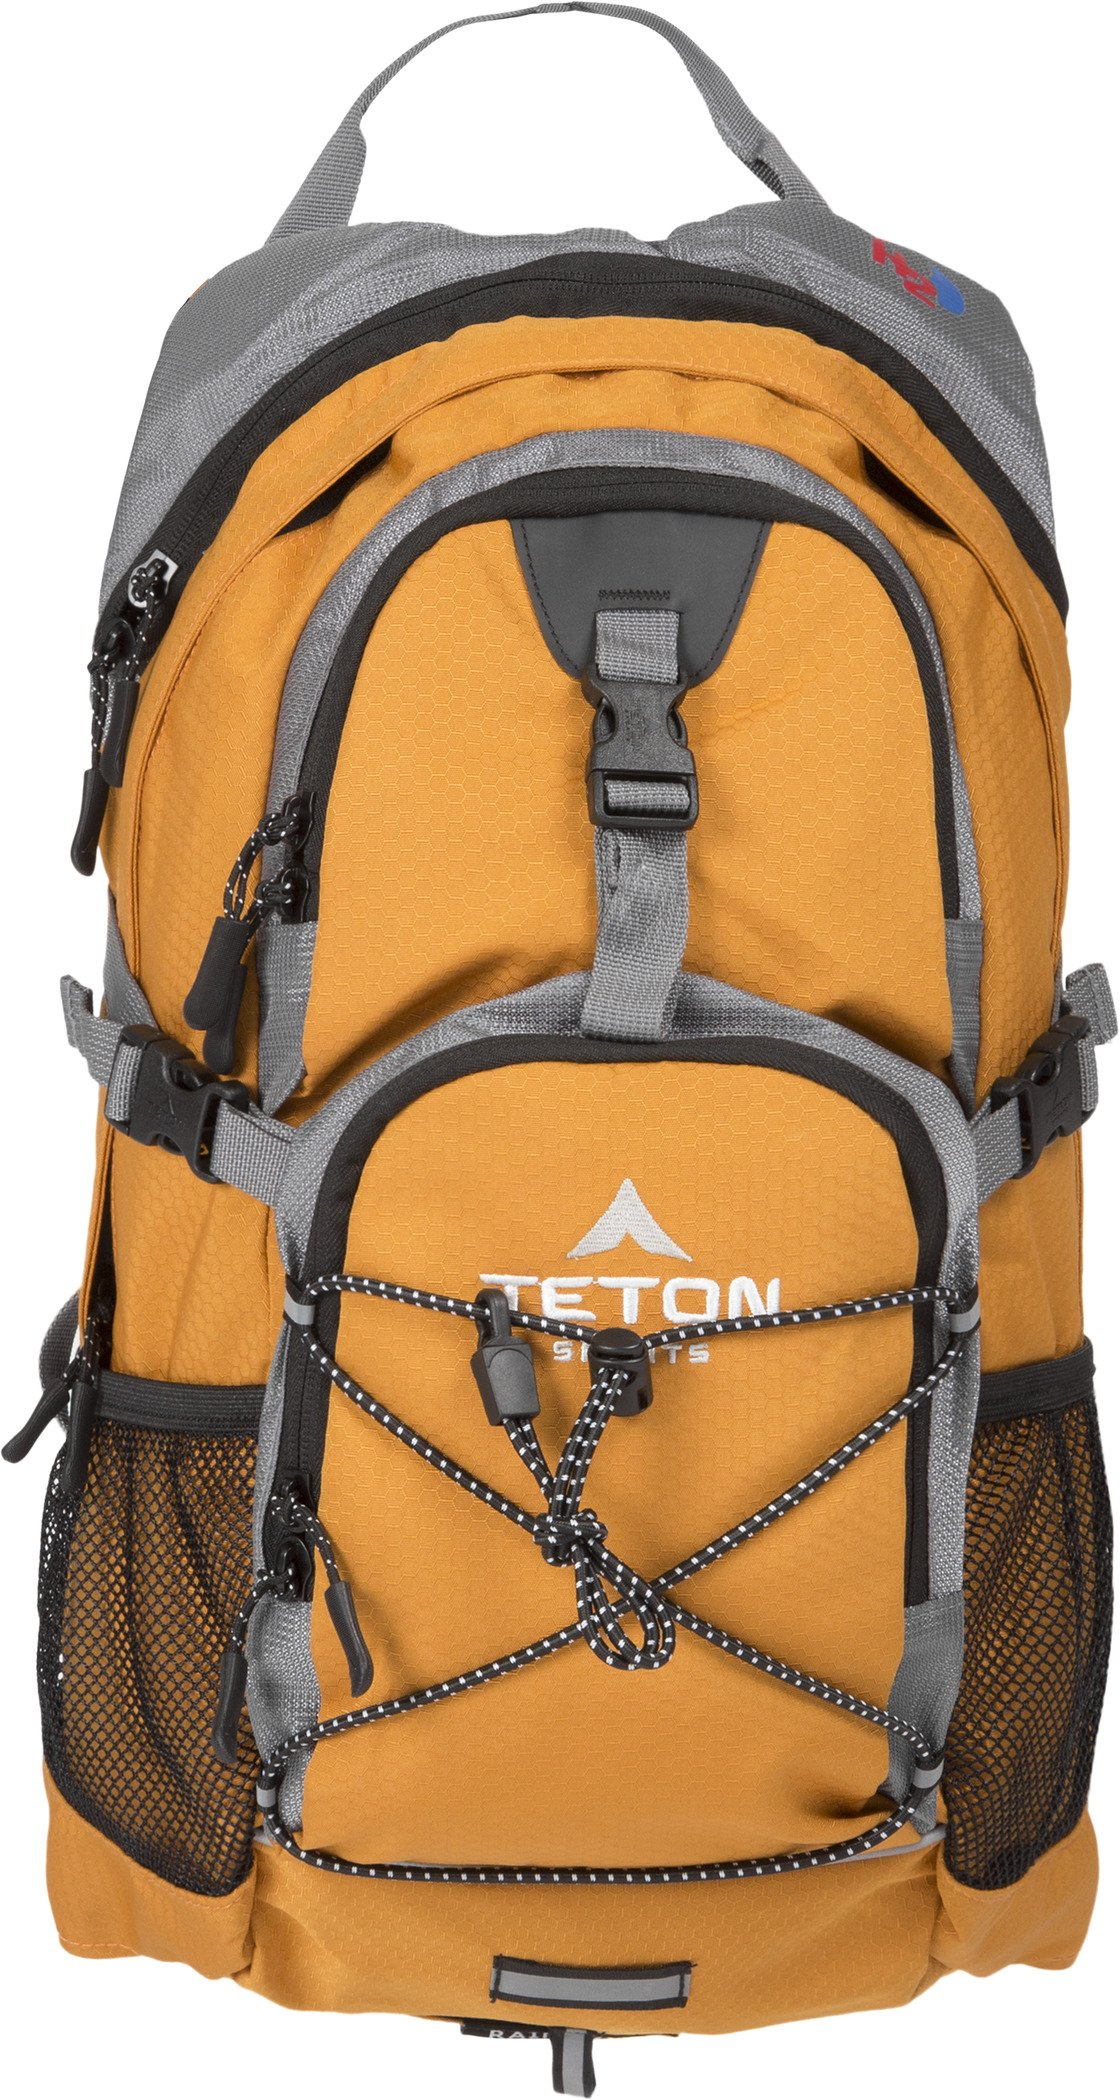 TETON Sports Oasis 1100 Hydration Pack | Free 2-Liter Hydration Bladder | Backpack design great for Hiking, Running, Cycling, and Climbing | Orange